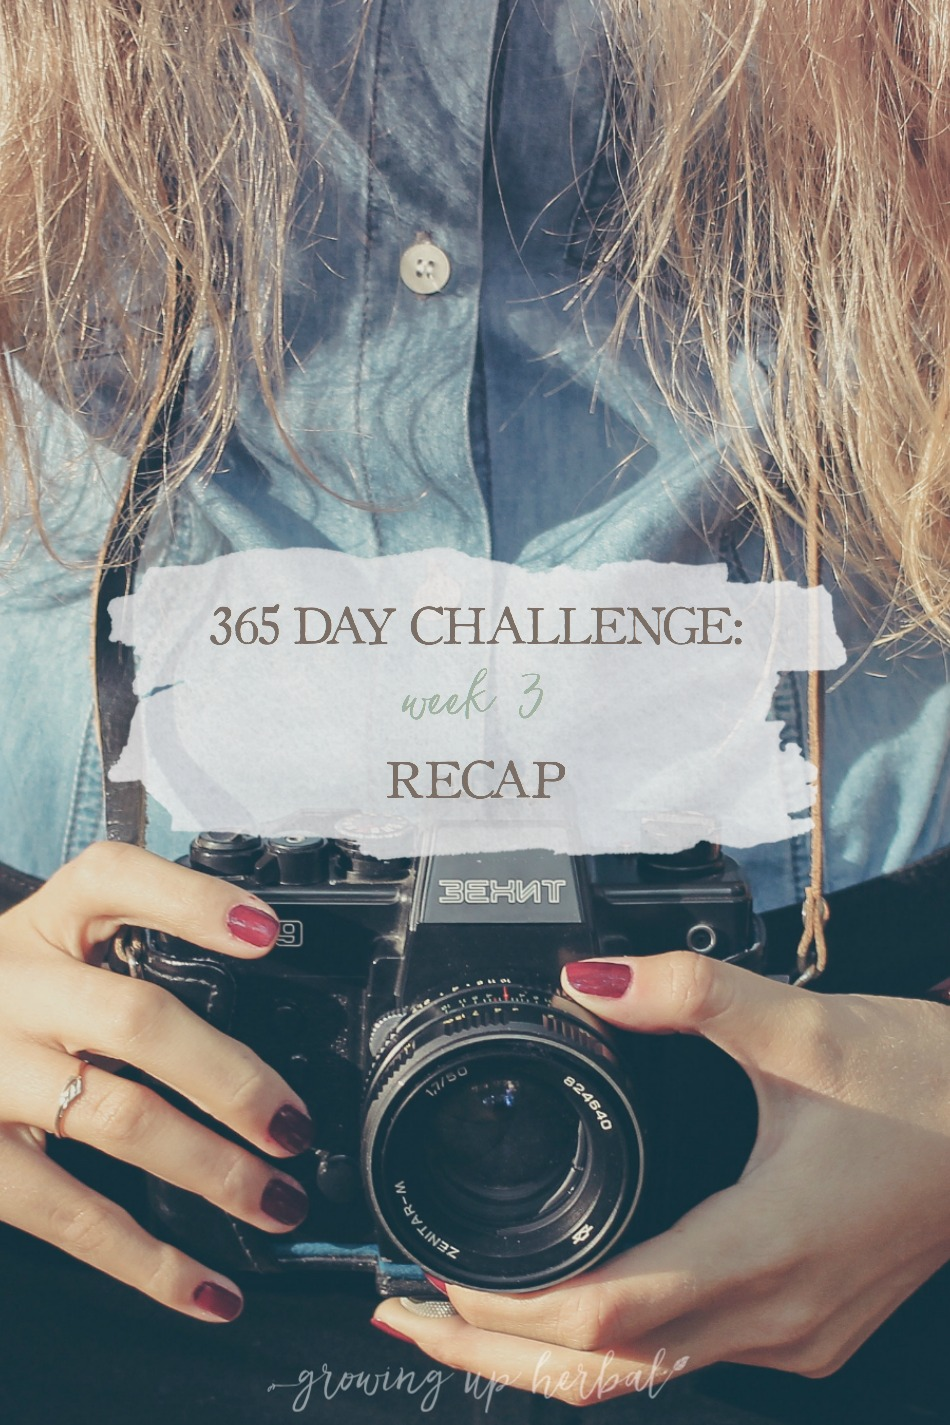 365 Day Challenge: Week 3 Recap | Growing Up Herbal